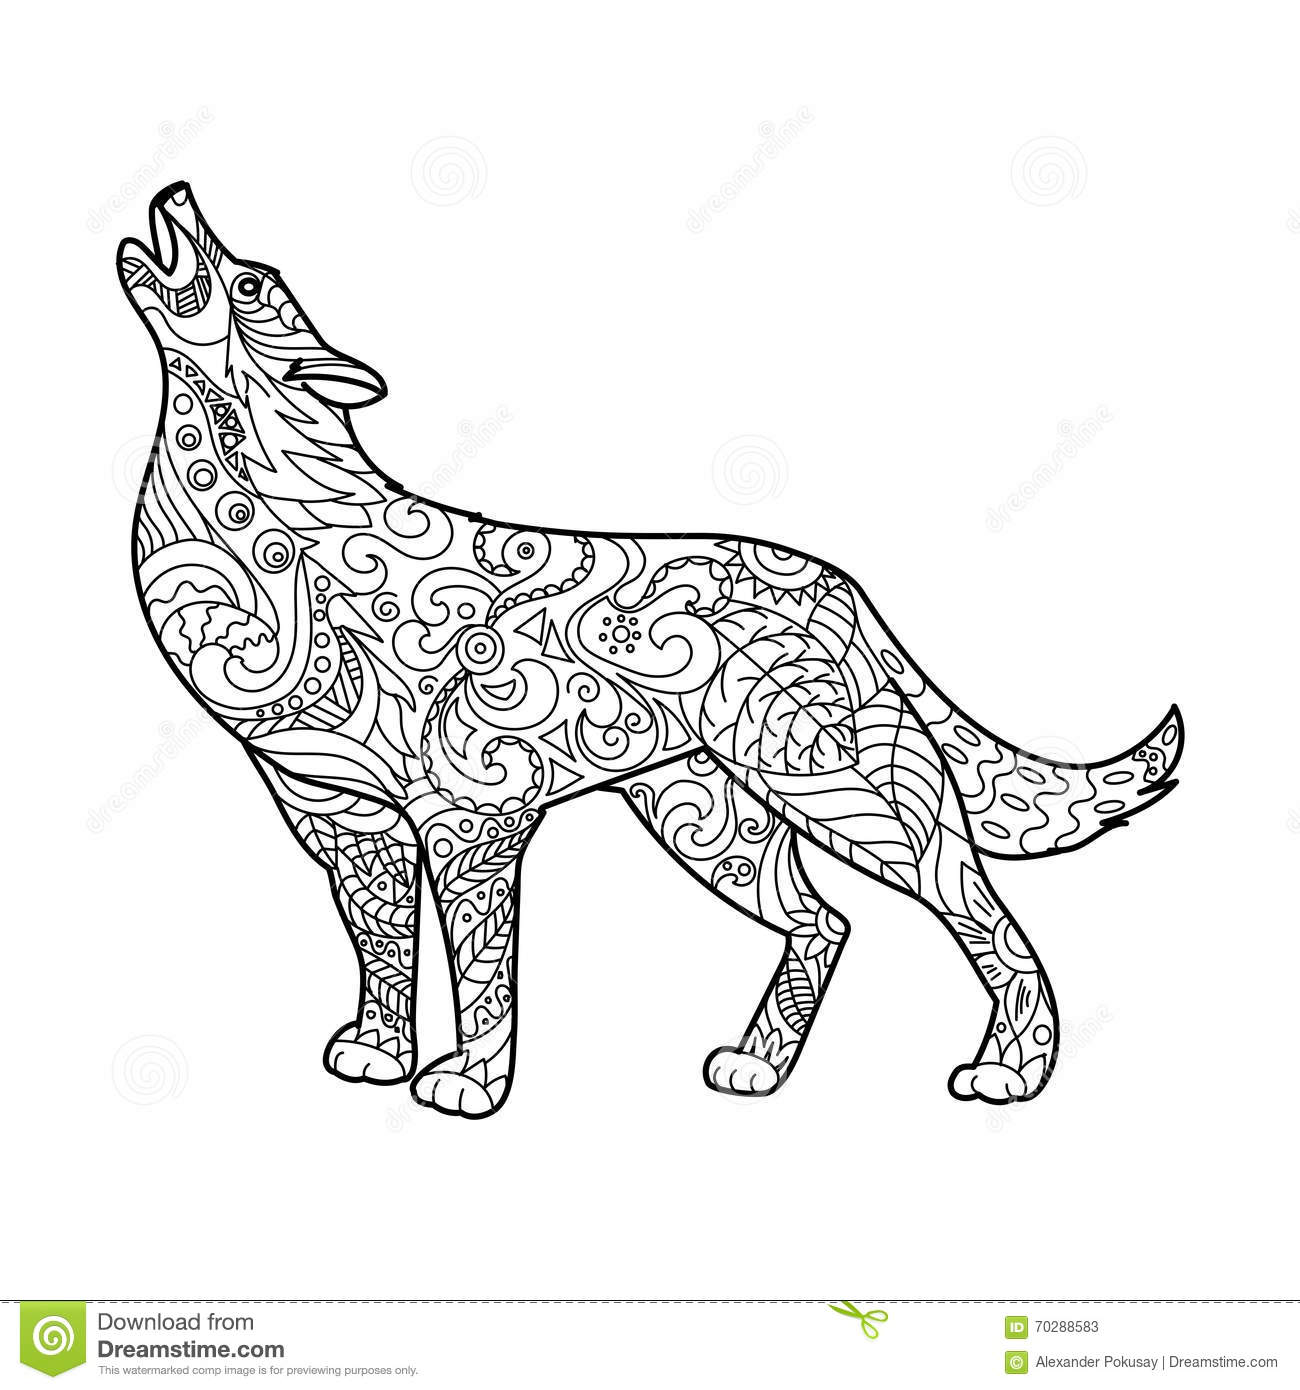 royalty free vector download wolf coloring book - Wolf Coloring Book